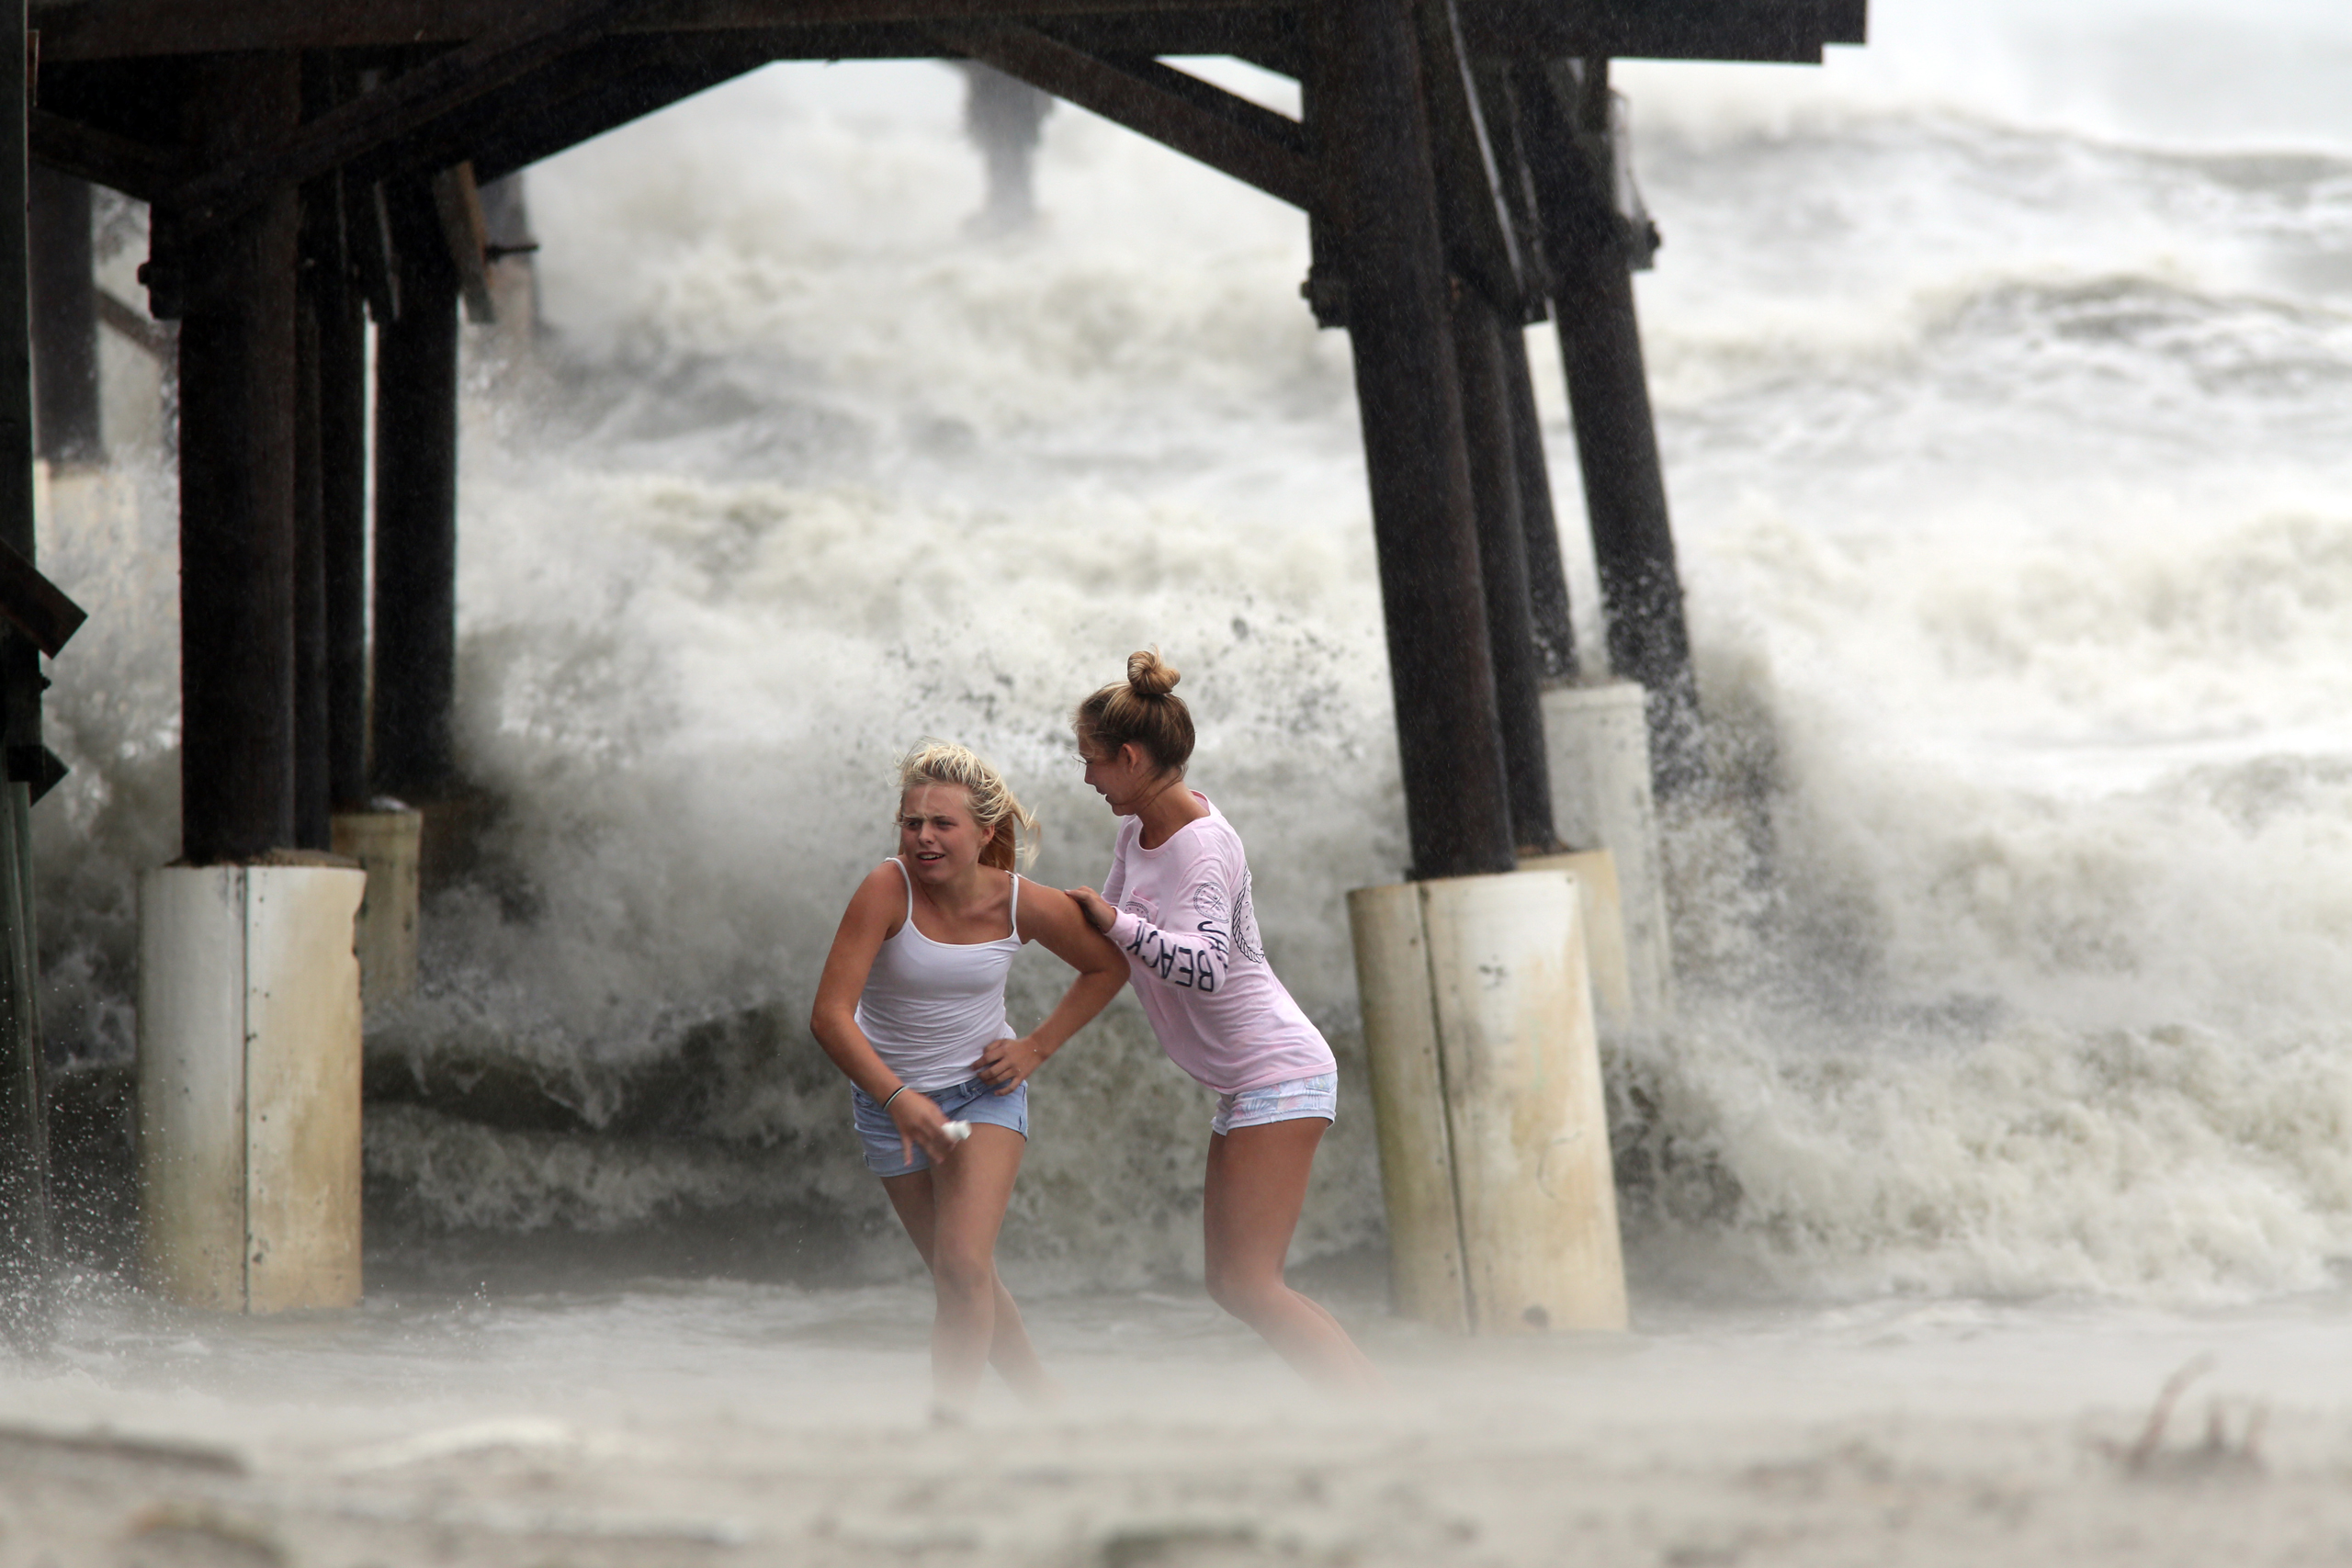 Kaleigh Black, 14, left, and Amber Olsen, 12, run for cover as a squall with rain and wind from the remnants of Hurricane Matthew pelt them as they explore the Cocoa Beach Pier in Cocoa Beach, Fla., on Oct. 7, 2016.